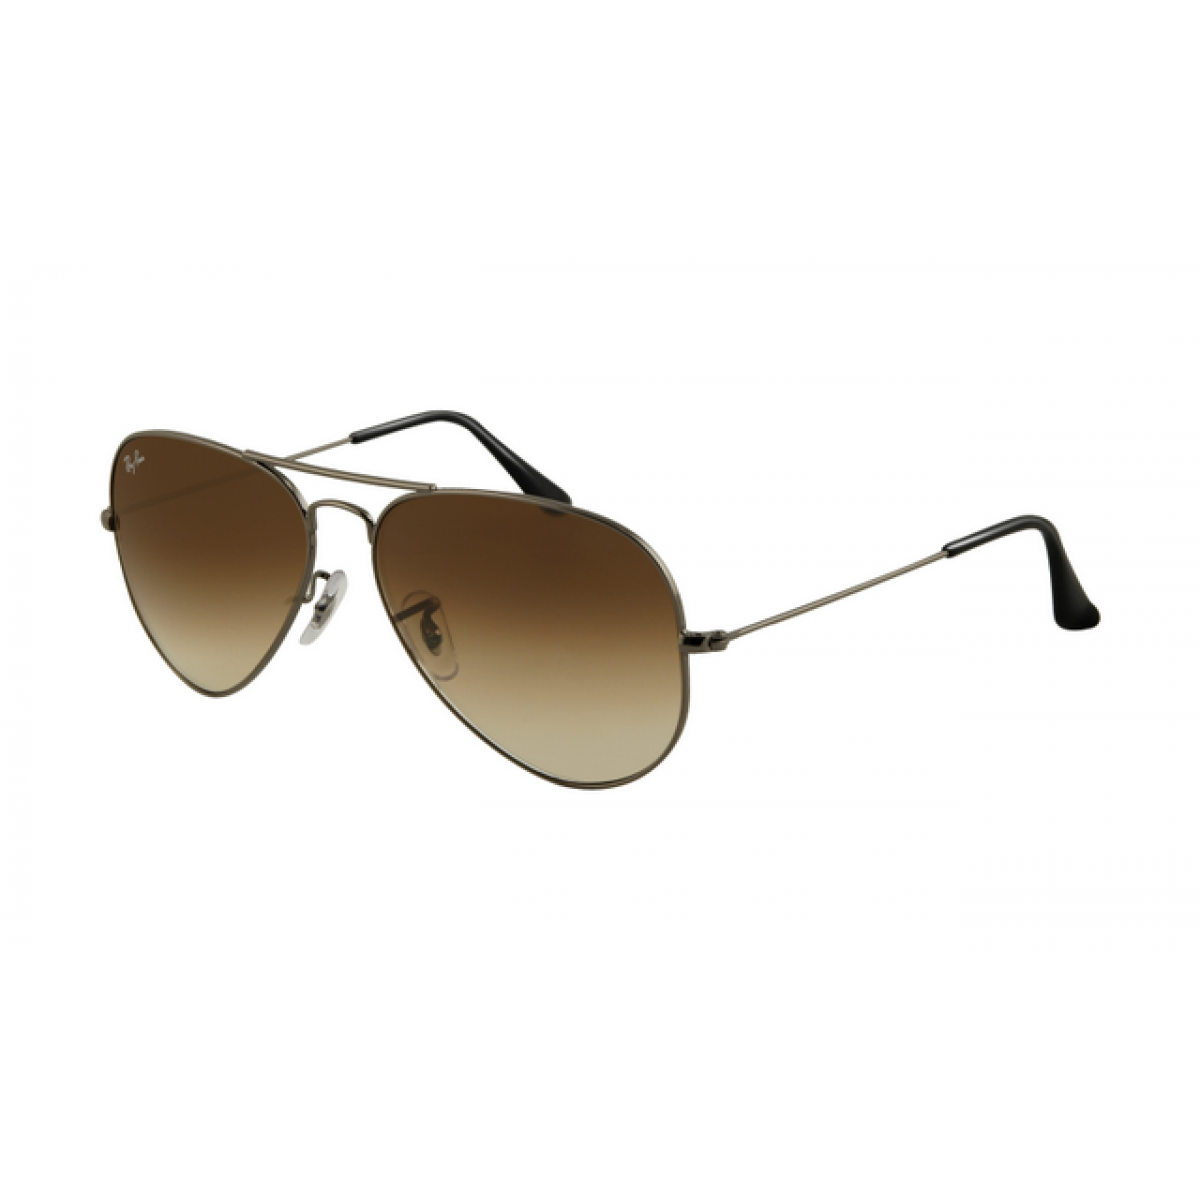 Ray ban craft sunglasses for cheap g31 louisiana bucket for Ray ban craft round